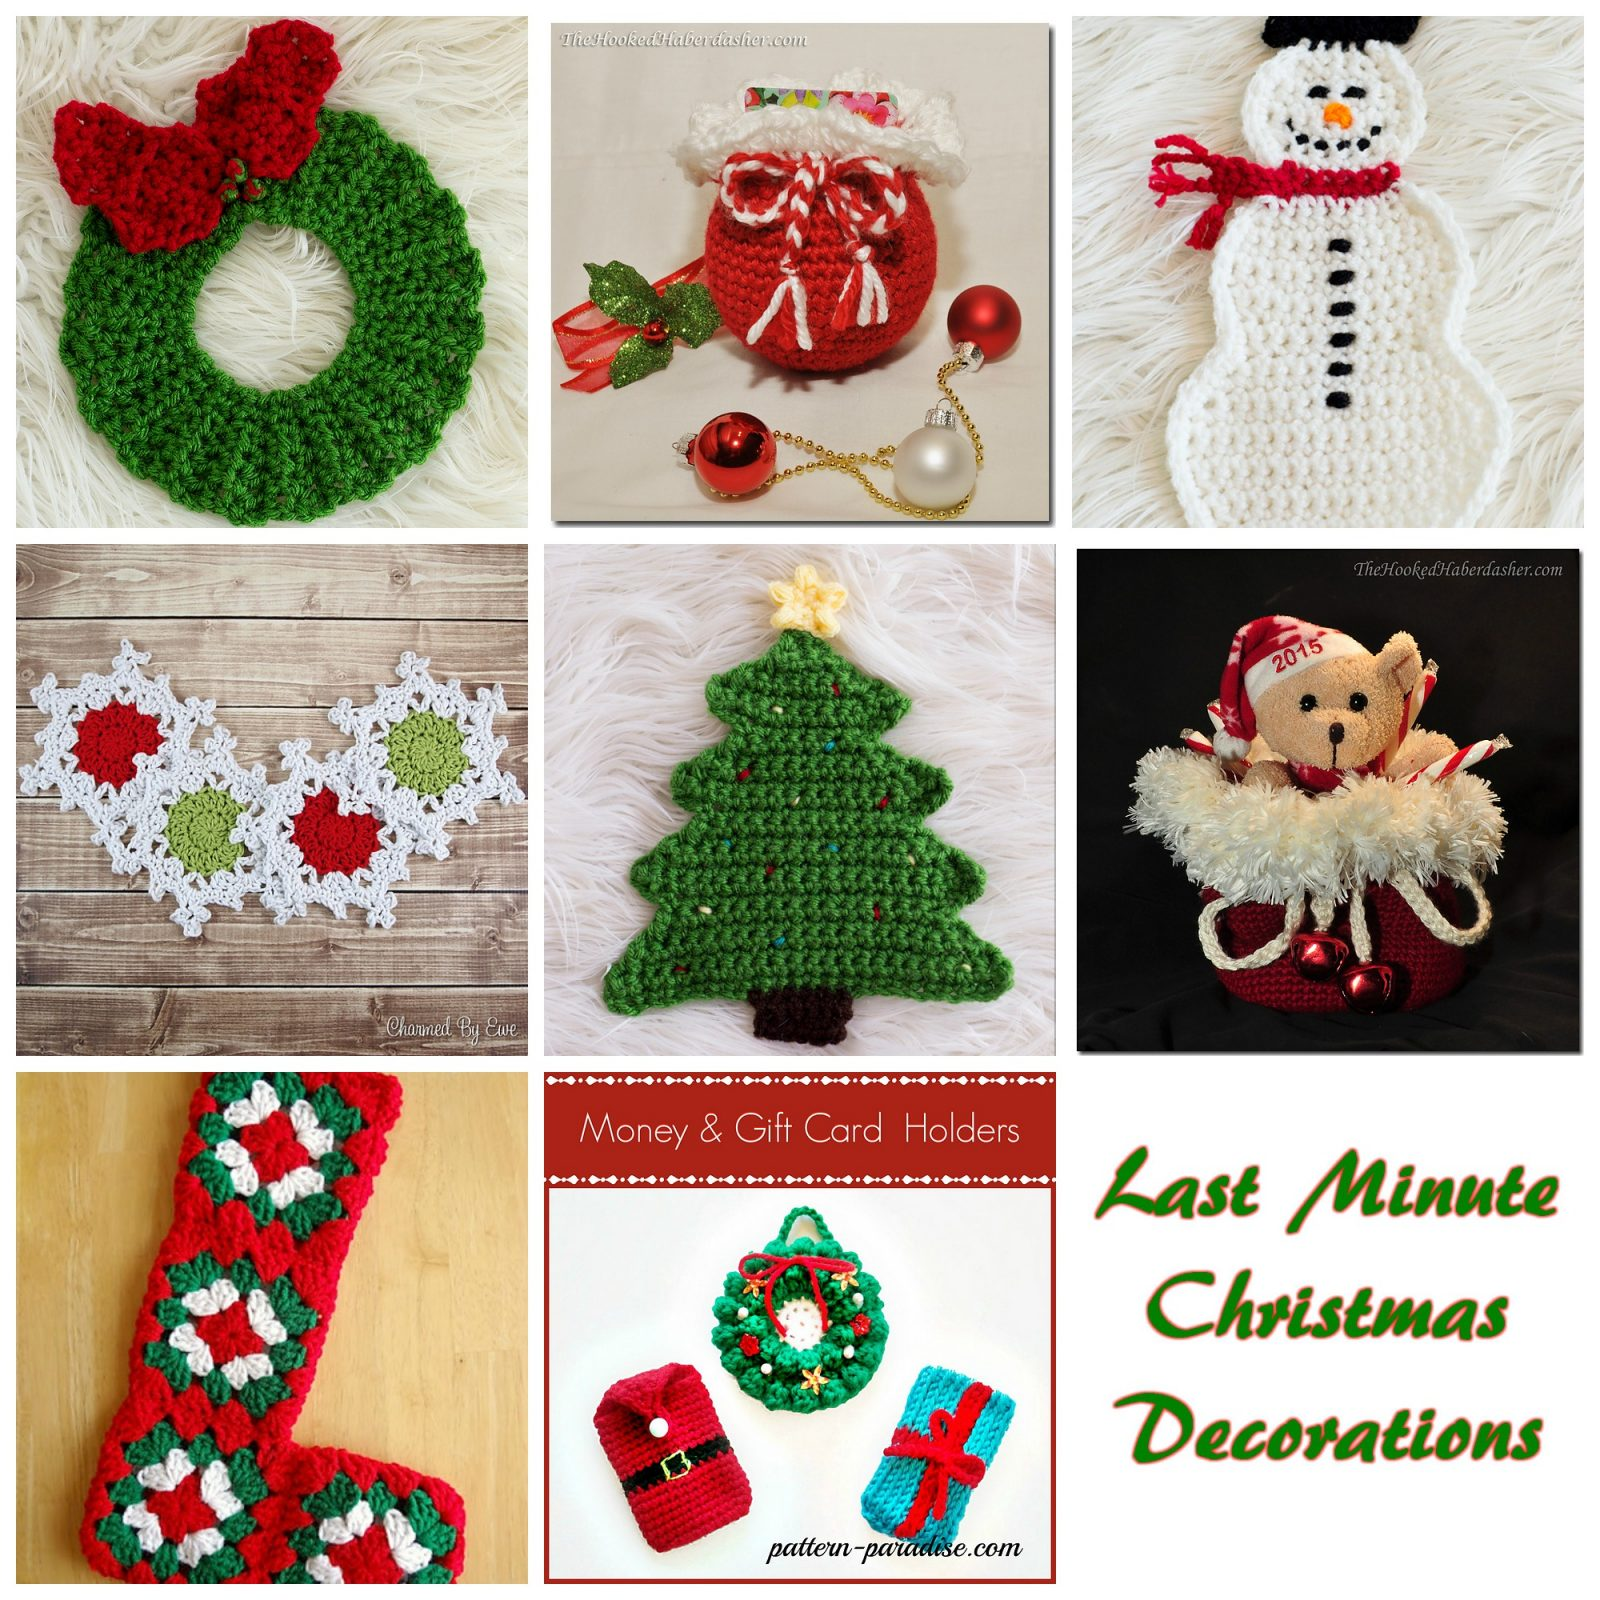 Last Minute Christmas Decoration Ideas - Crochet Round Up ...